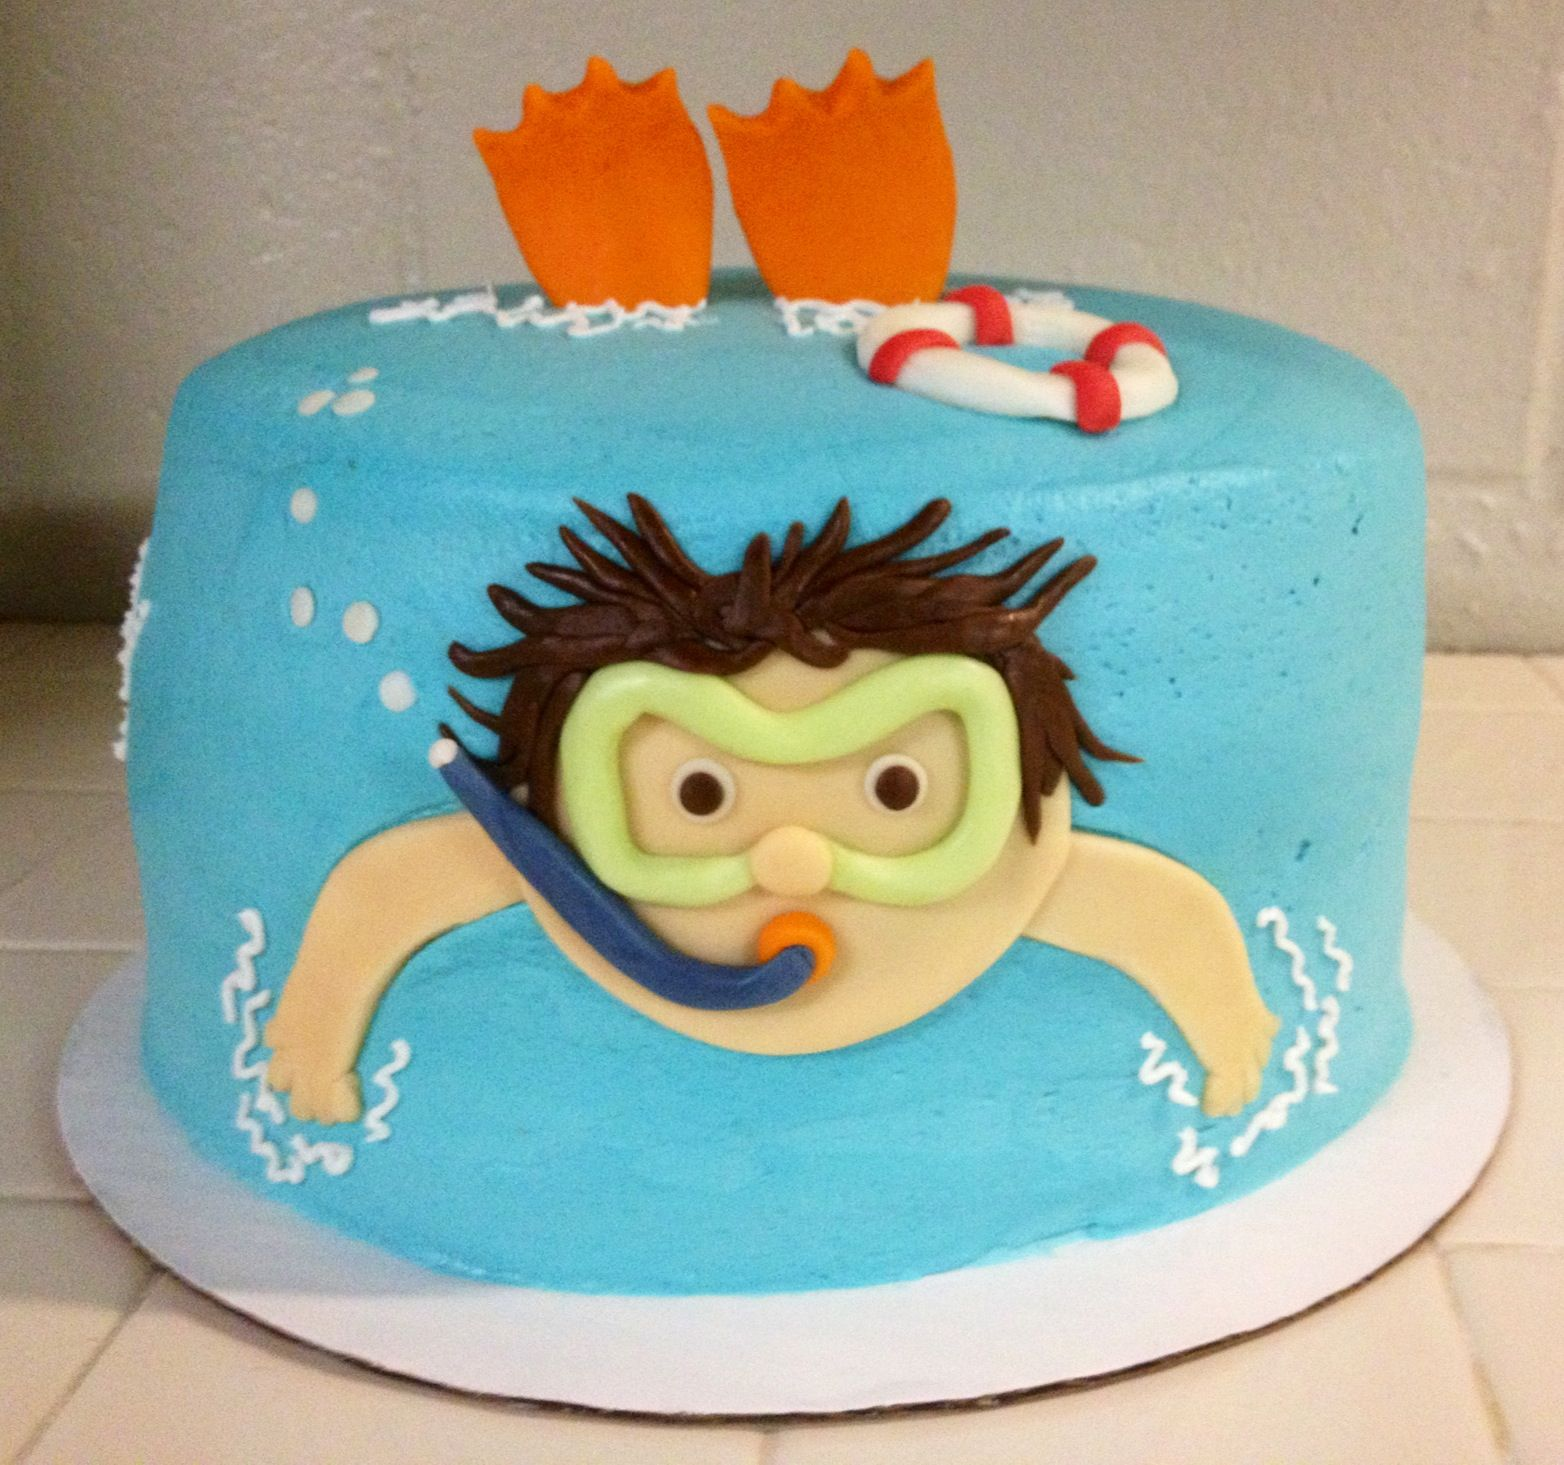 Cake Ideas For Birthday Party : Pool party birthday cake Cake ideas Pinterest